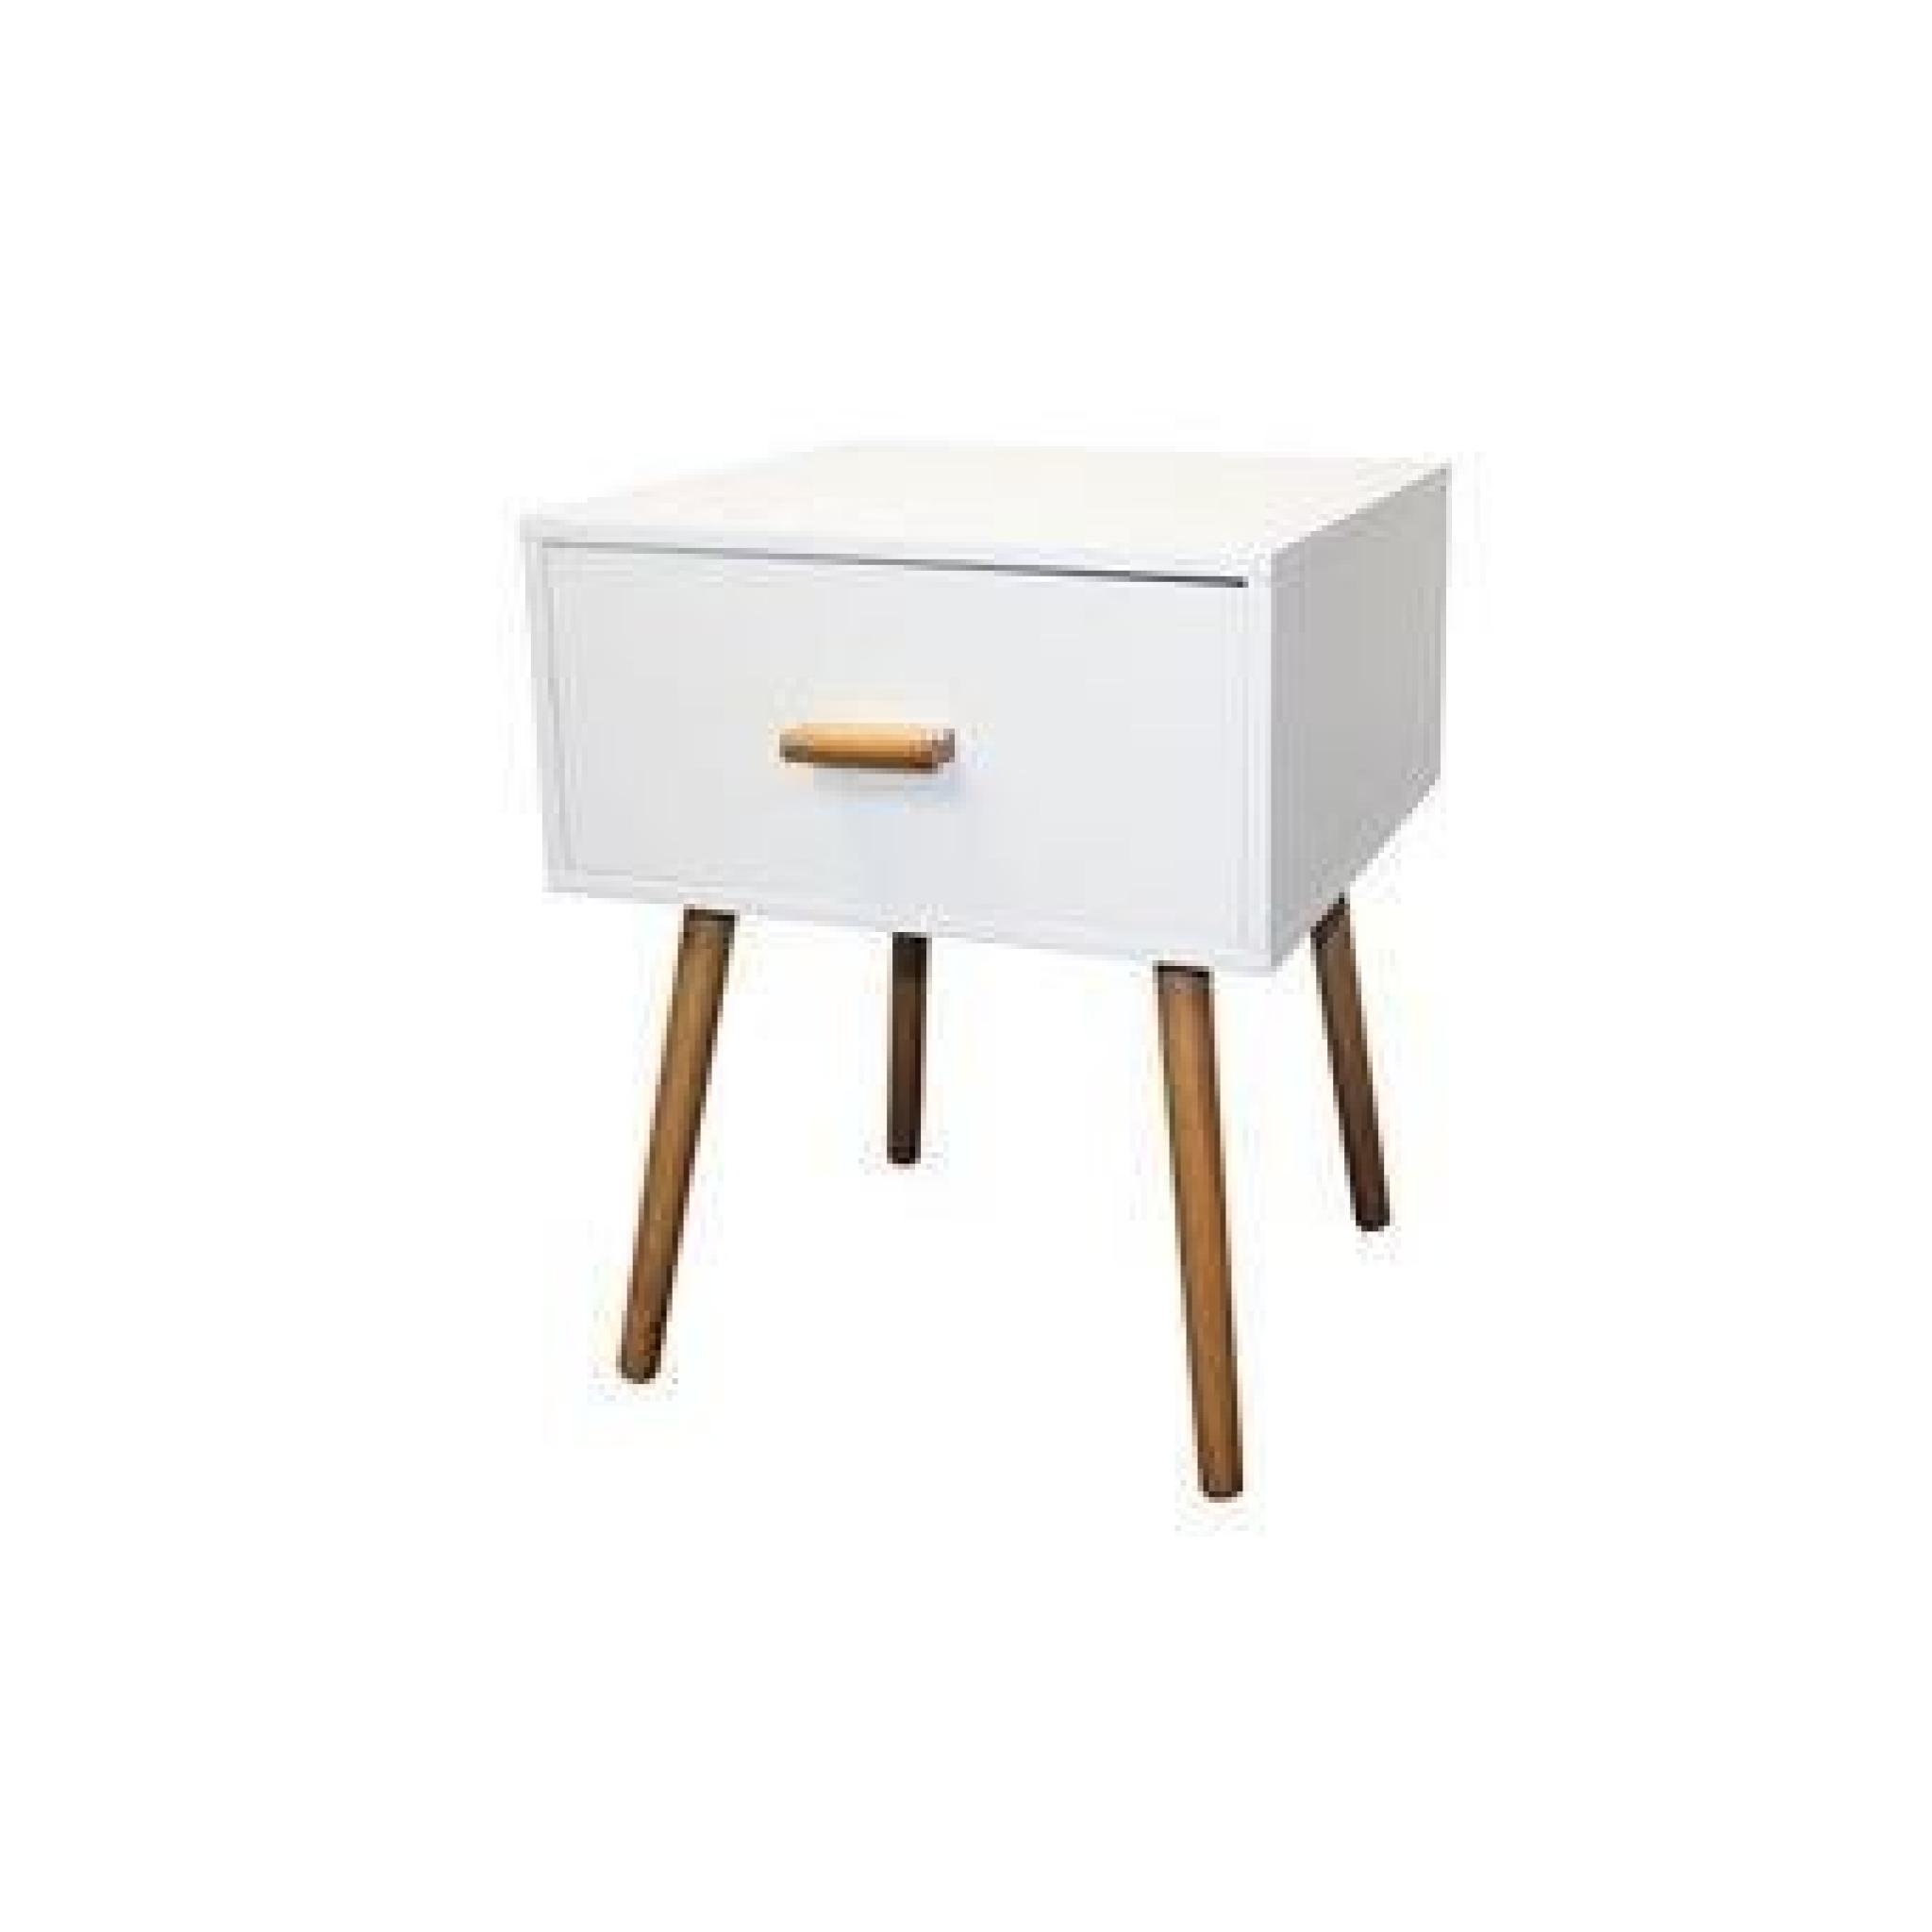 Table de chevet blanc design scandinave achat vente table basse pas cher - Table basse scandinave pas cher ...